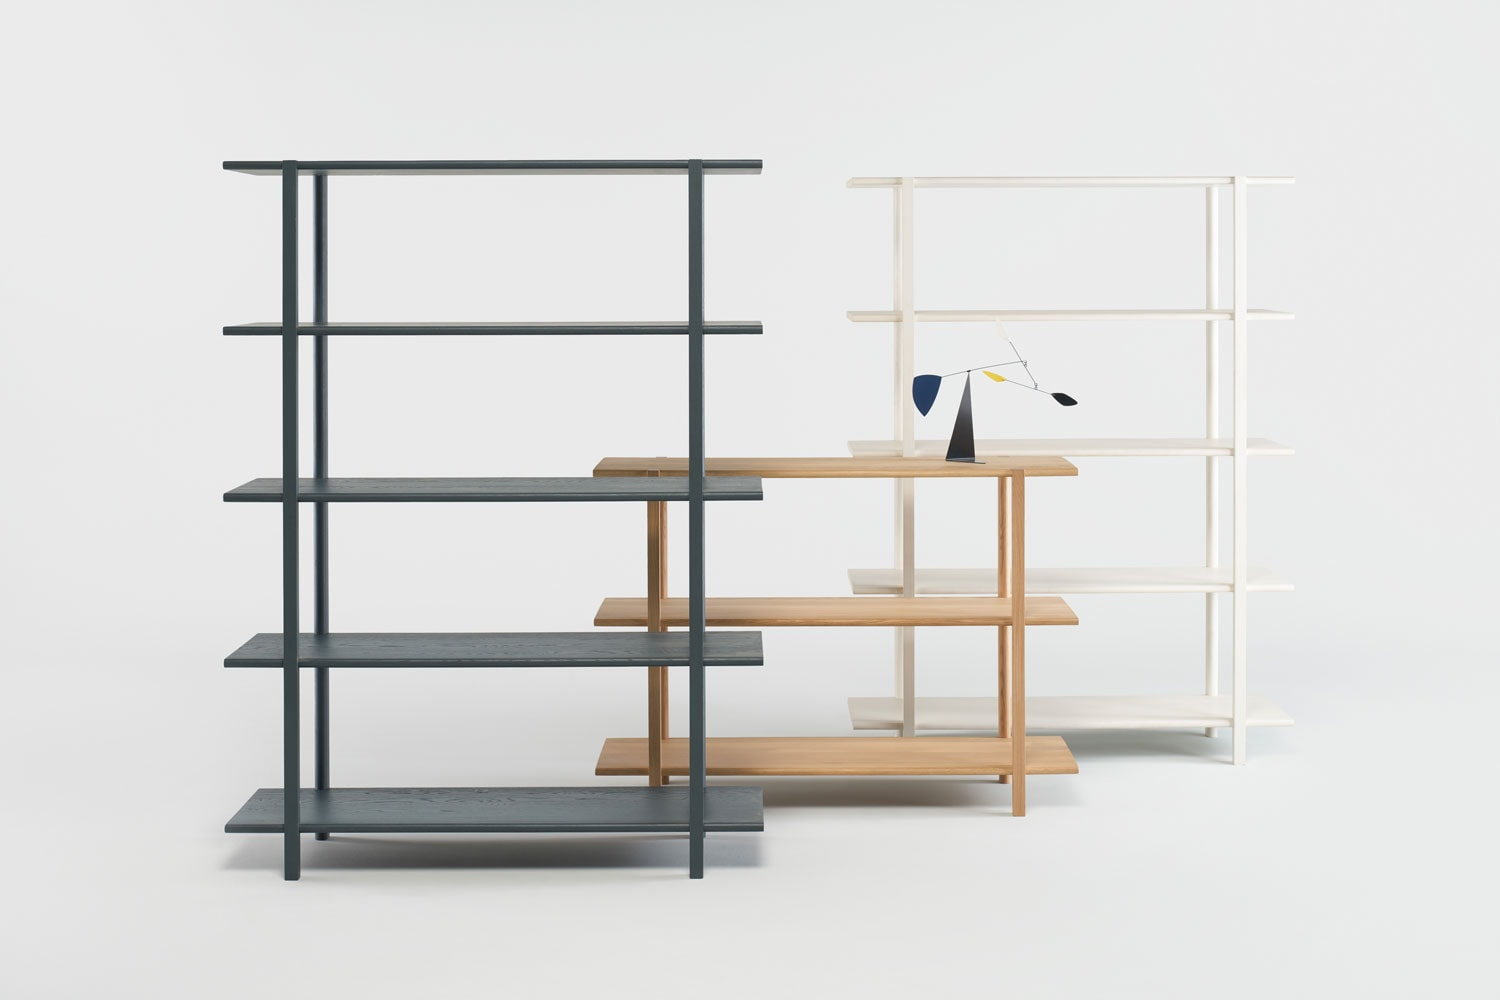 Furniture Design by London Studio Mentsen 5